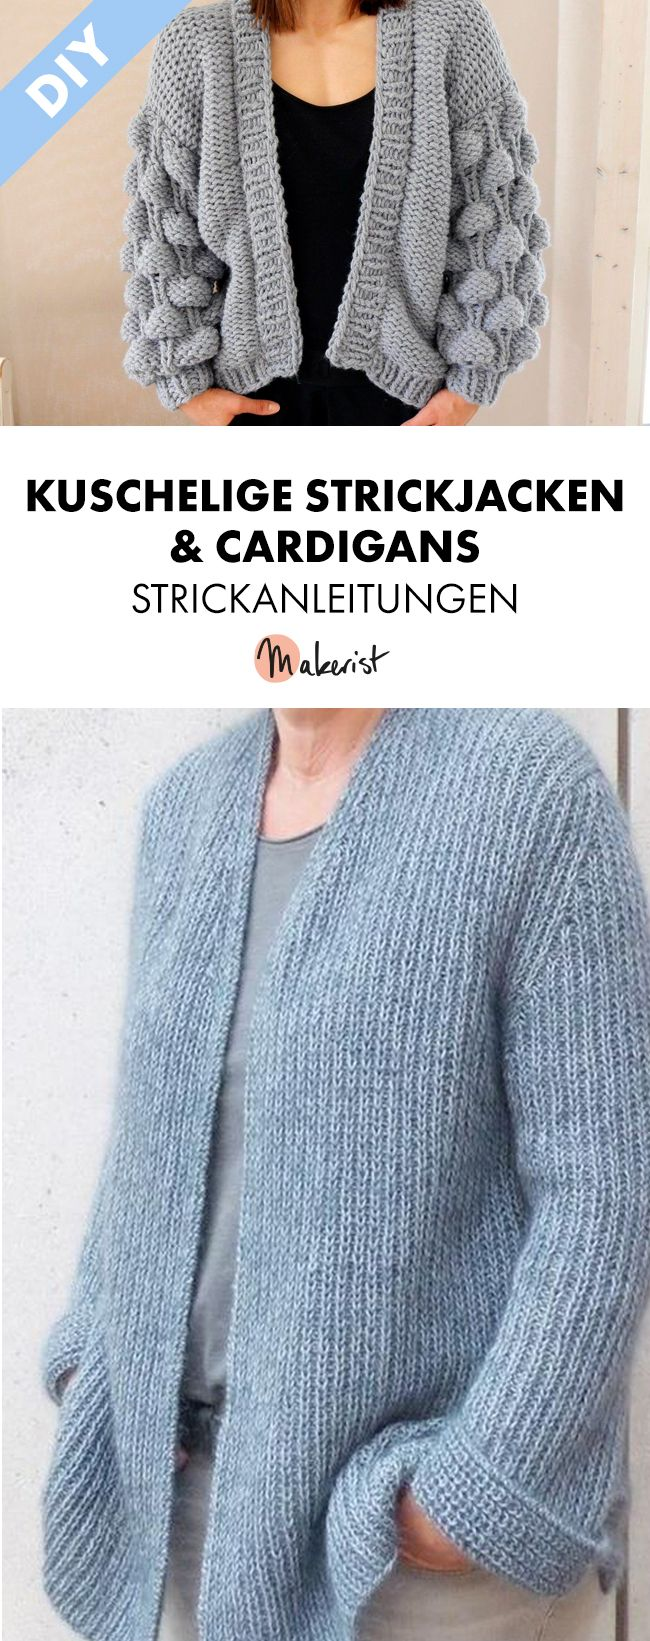 Photo of Strickjacken und Cardigans stricken